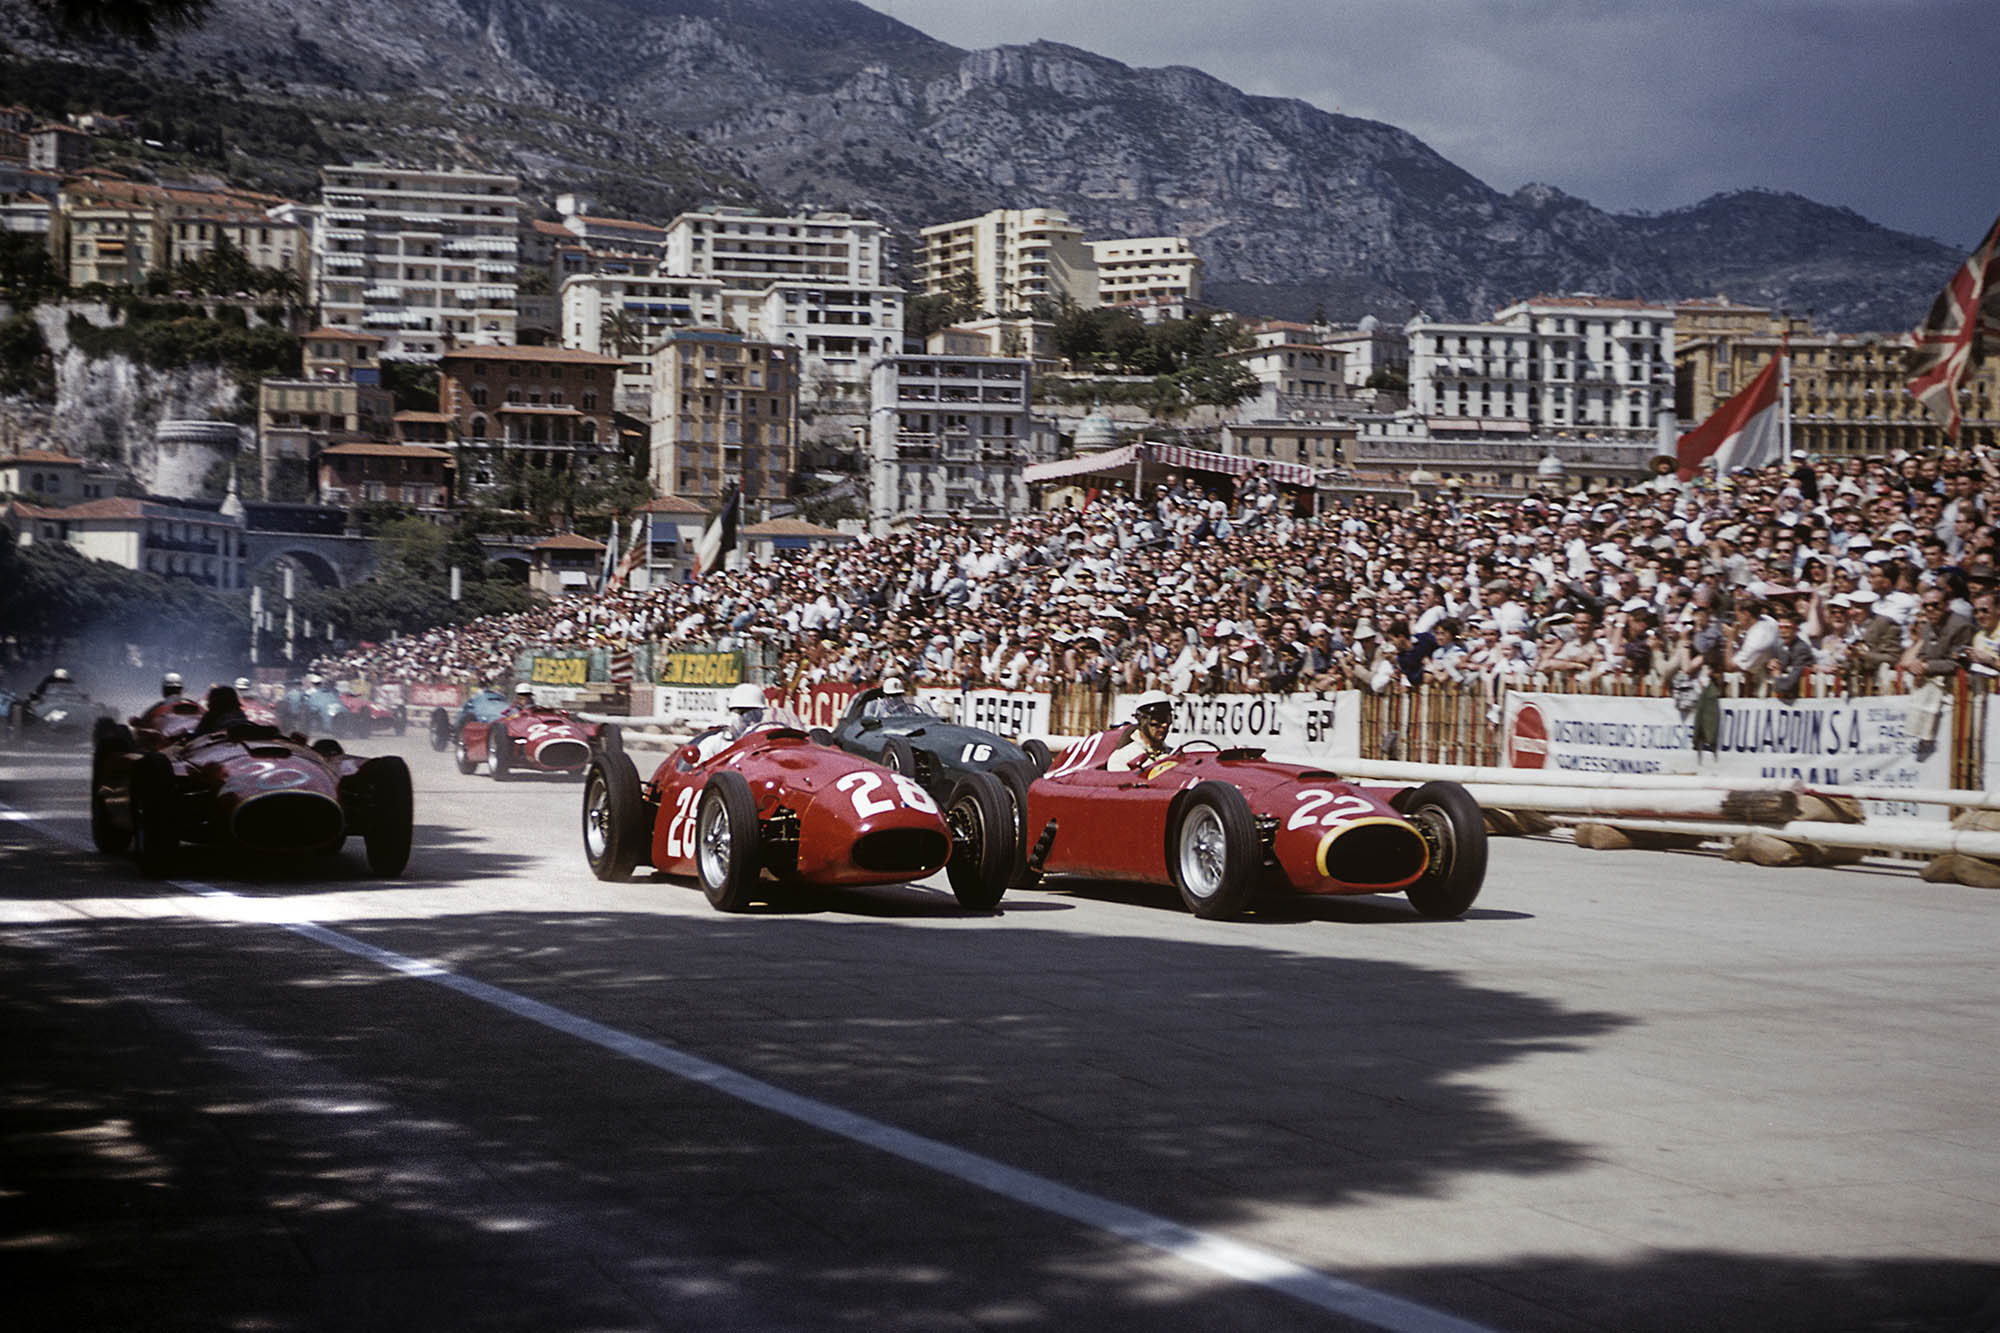 Image 1 of the Ferrari: Race to Immortality gallery